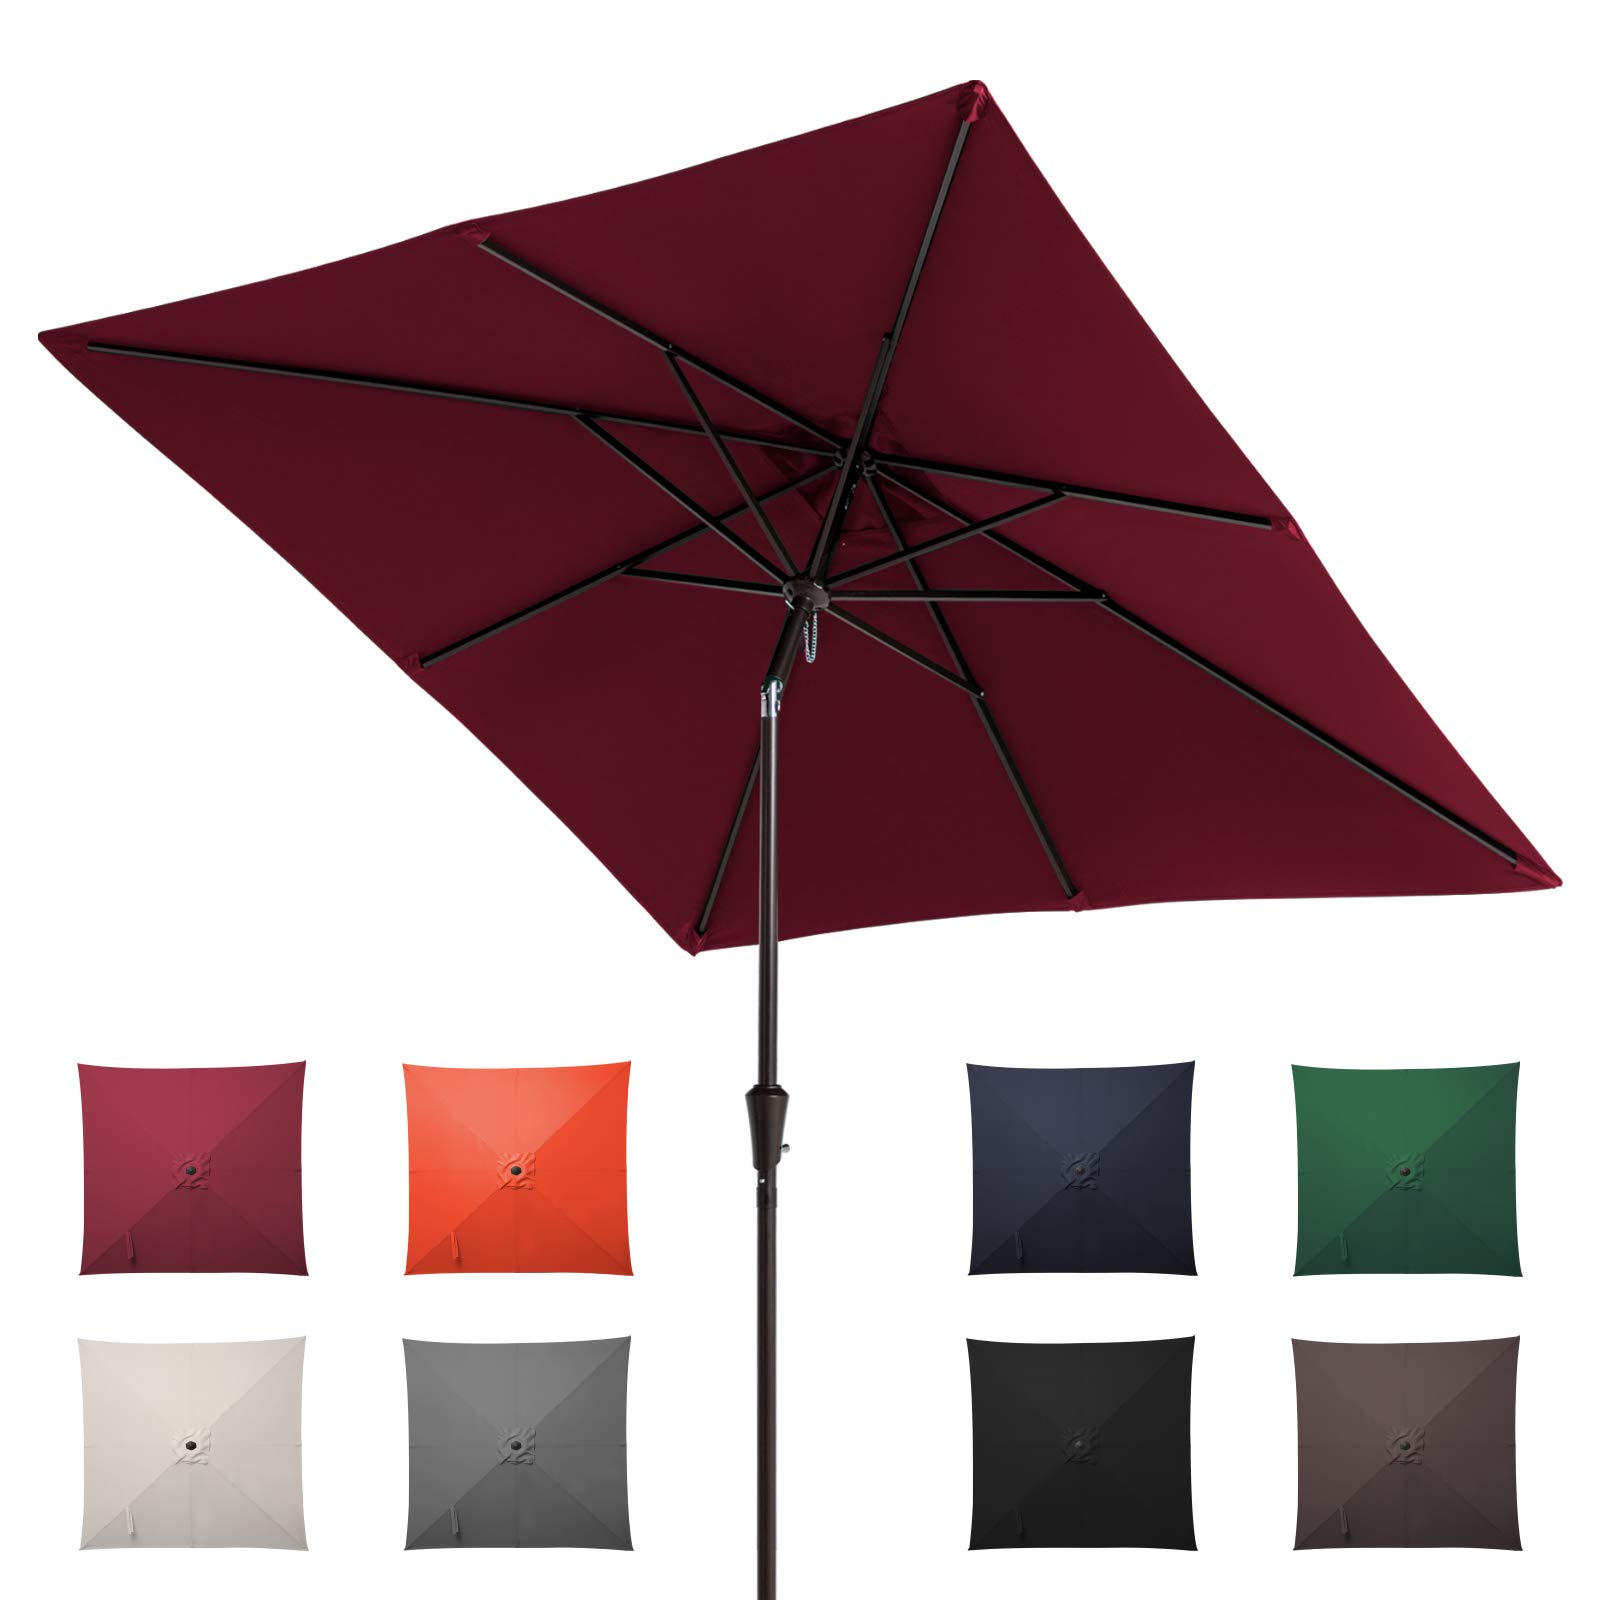 ROWHY Square 8×8ftPatio Table Market Umbrella Outdoor Portable Garden Sunshade with Push Button Tilt and Crank Lift System UV Protection Waterproof Sunproof for Lawn Garden, Deck, Backyard (Red)